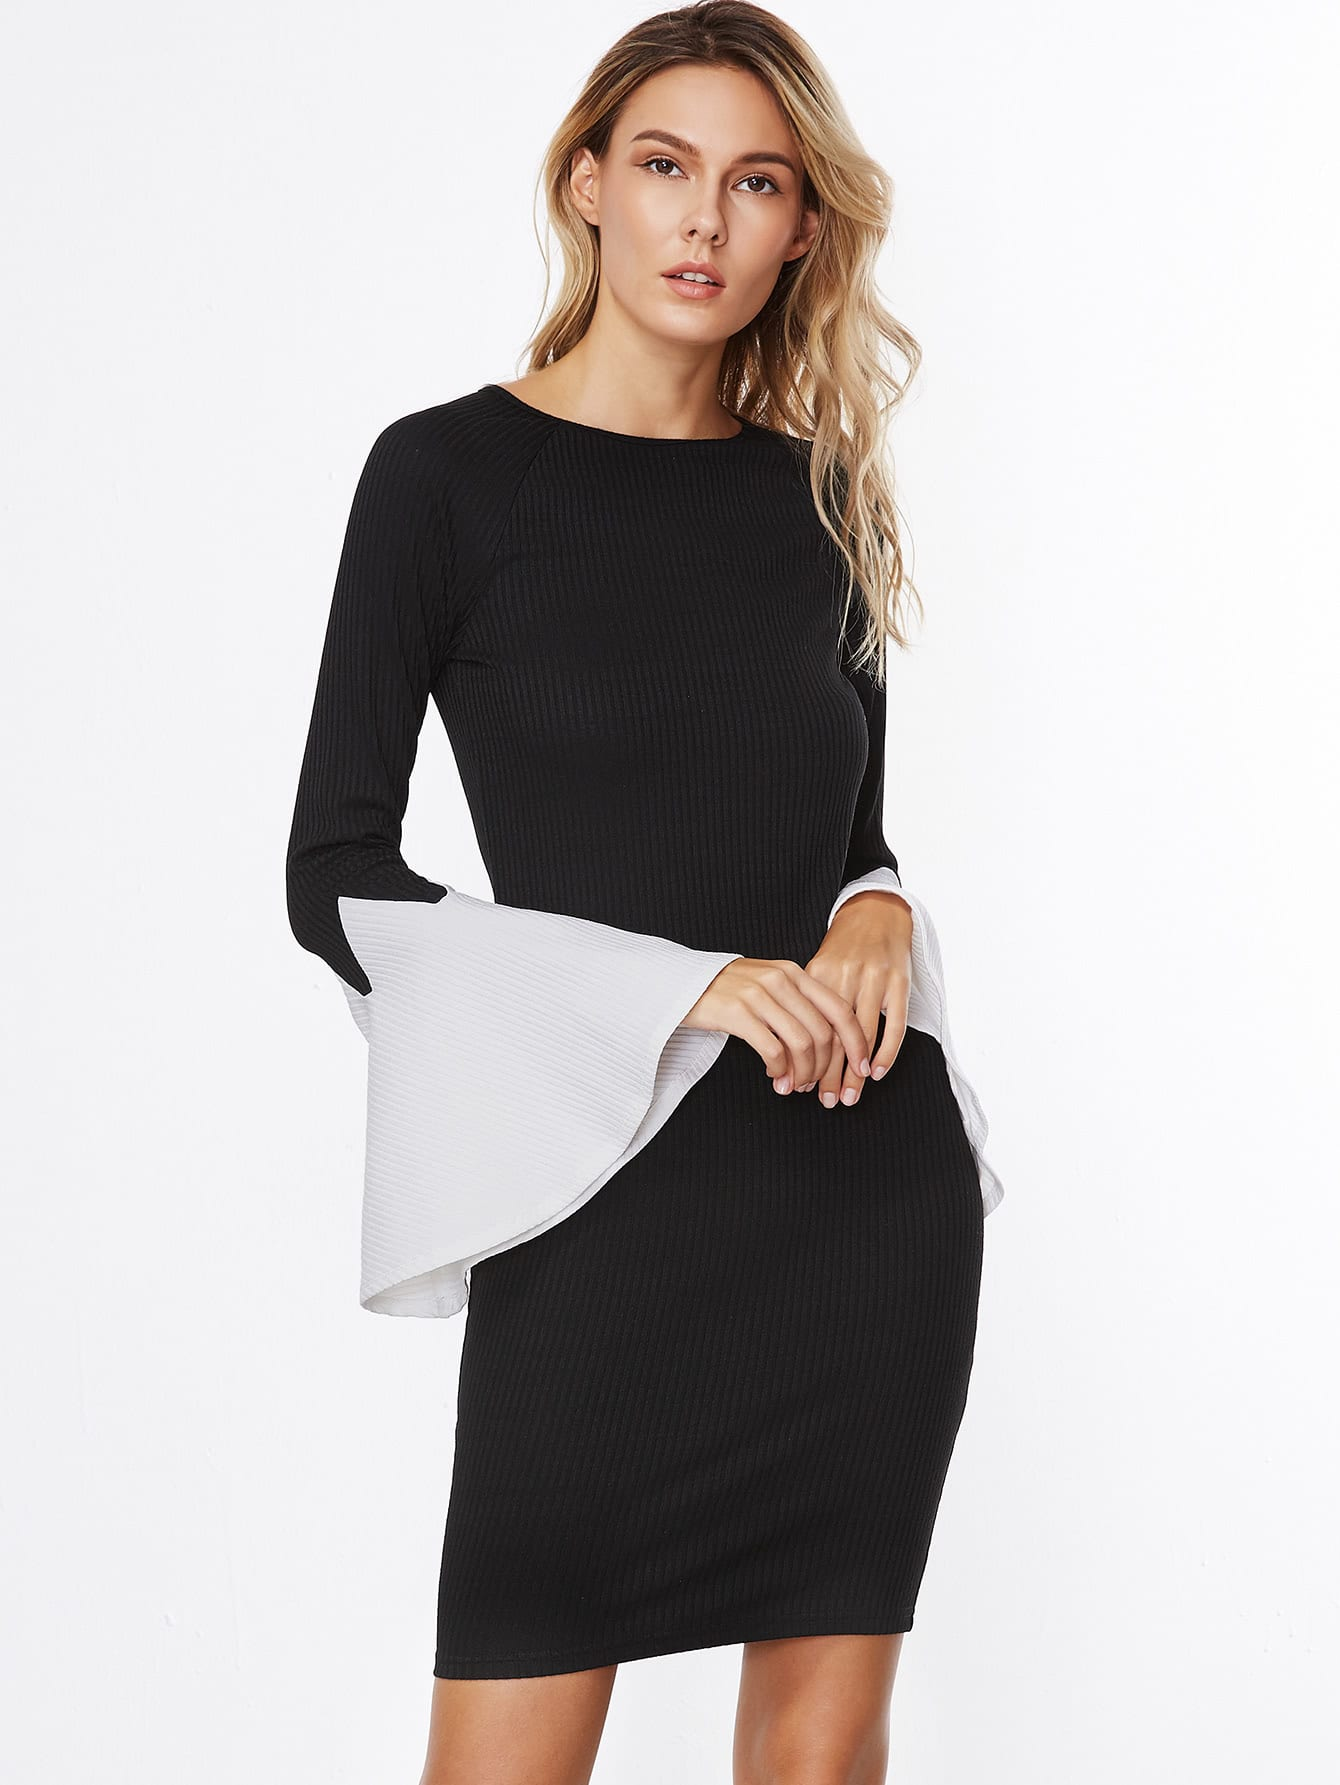 Black Ribbed Knit Contrast Bell Sleeve Bodycon Dress dress161028704